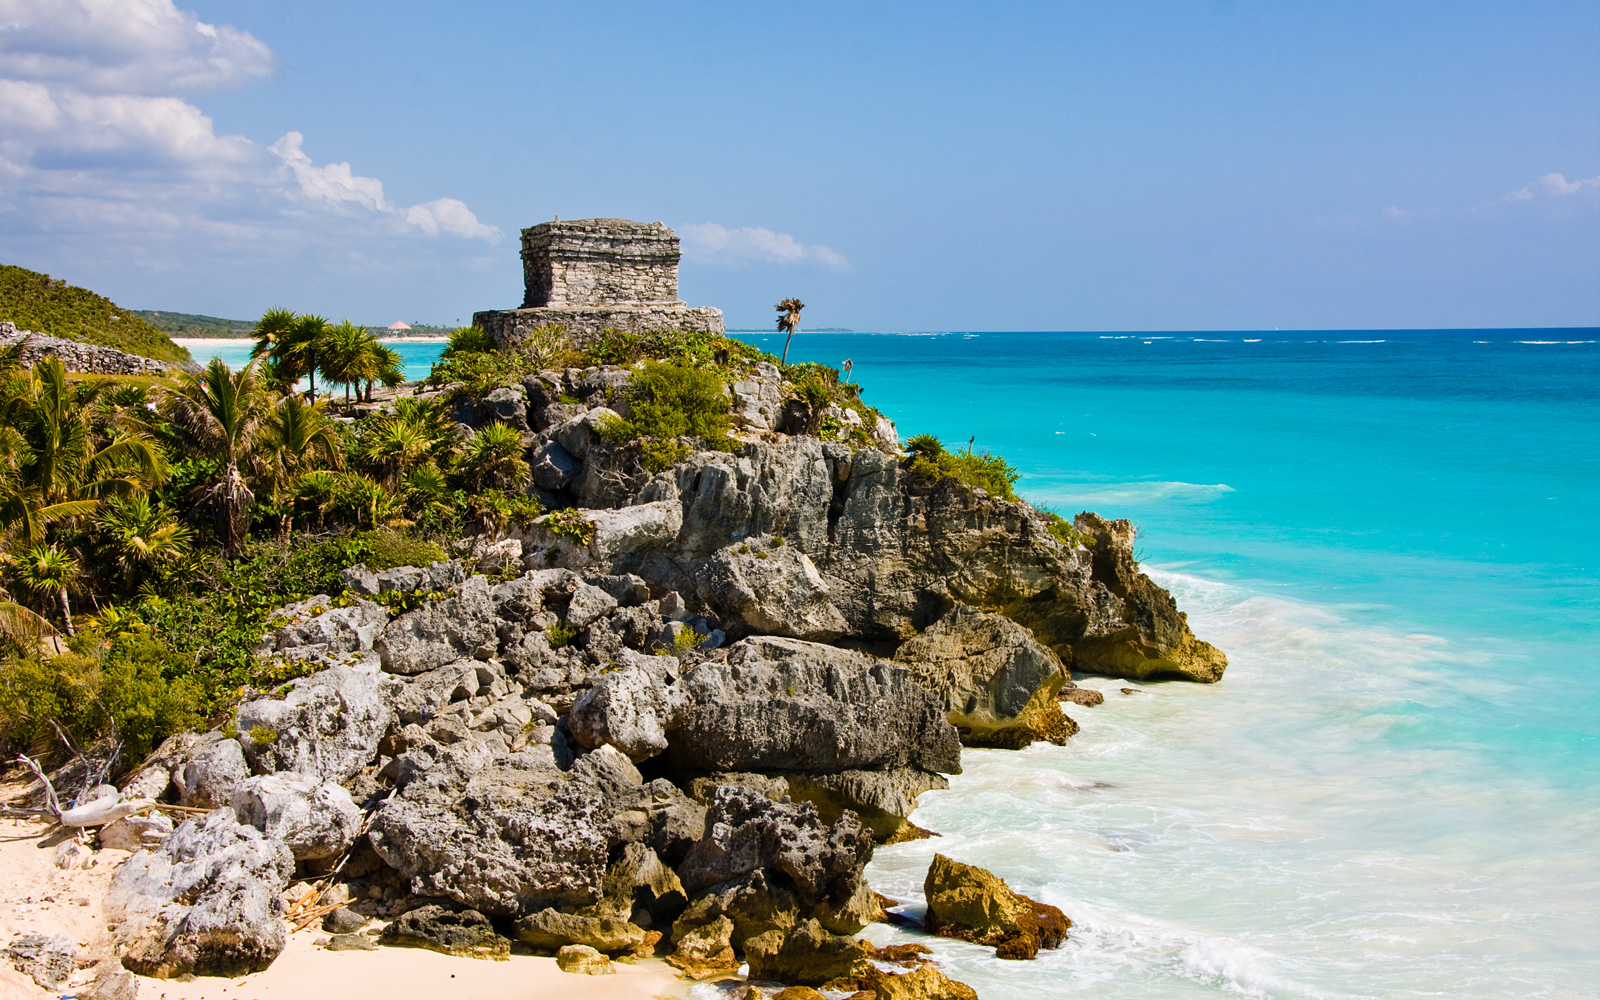 Tulum Kicks Off Its First Arts and Culture Festival 'Art With Me'